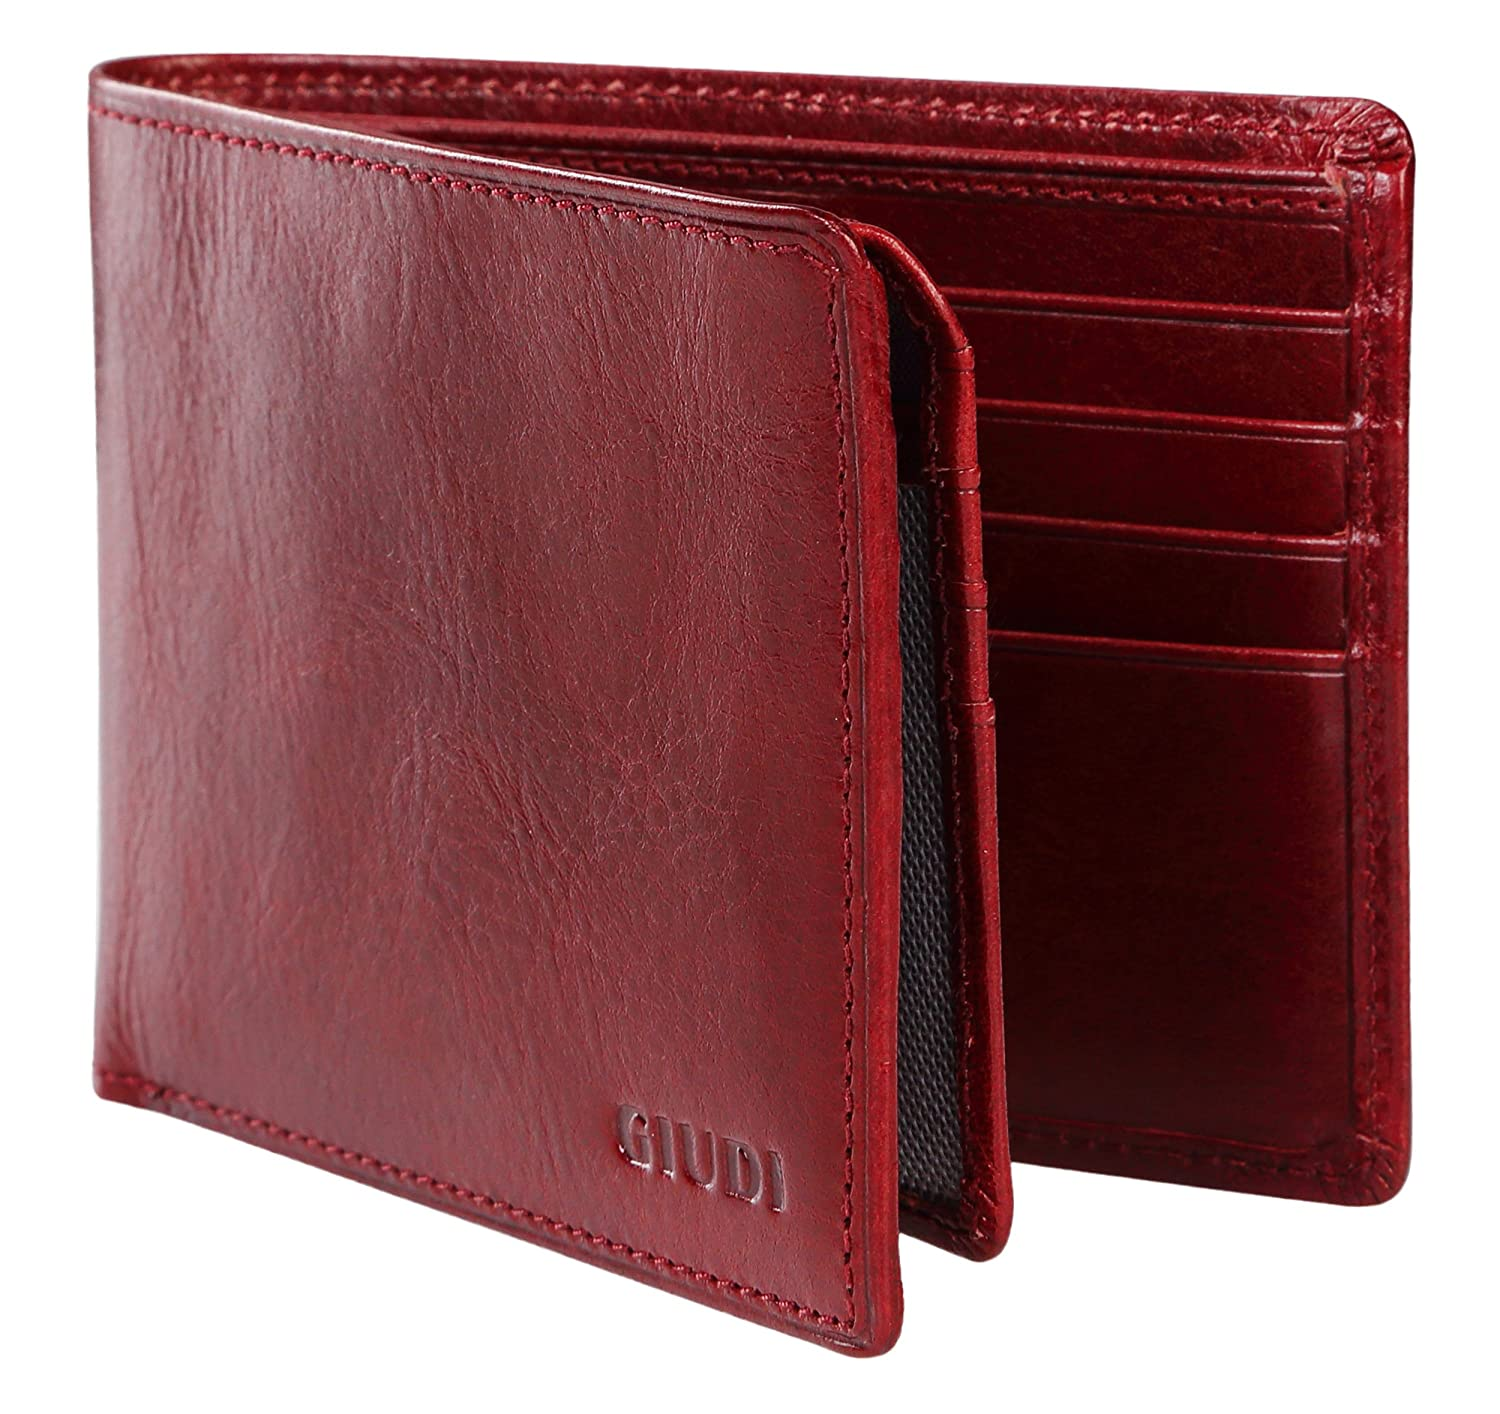 1d4ee5967627 Giudi Deluxe Comfortable Bifold Men s Wallet Made in Italy – 12 Business  Credit Card Holder – ID Window - Soft Touch Genuine Cow Leather - Excellent  Gift in ...